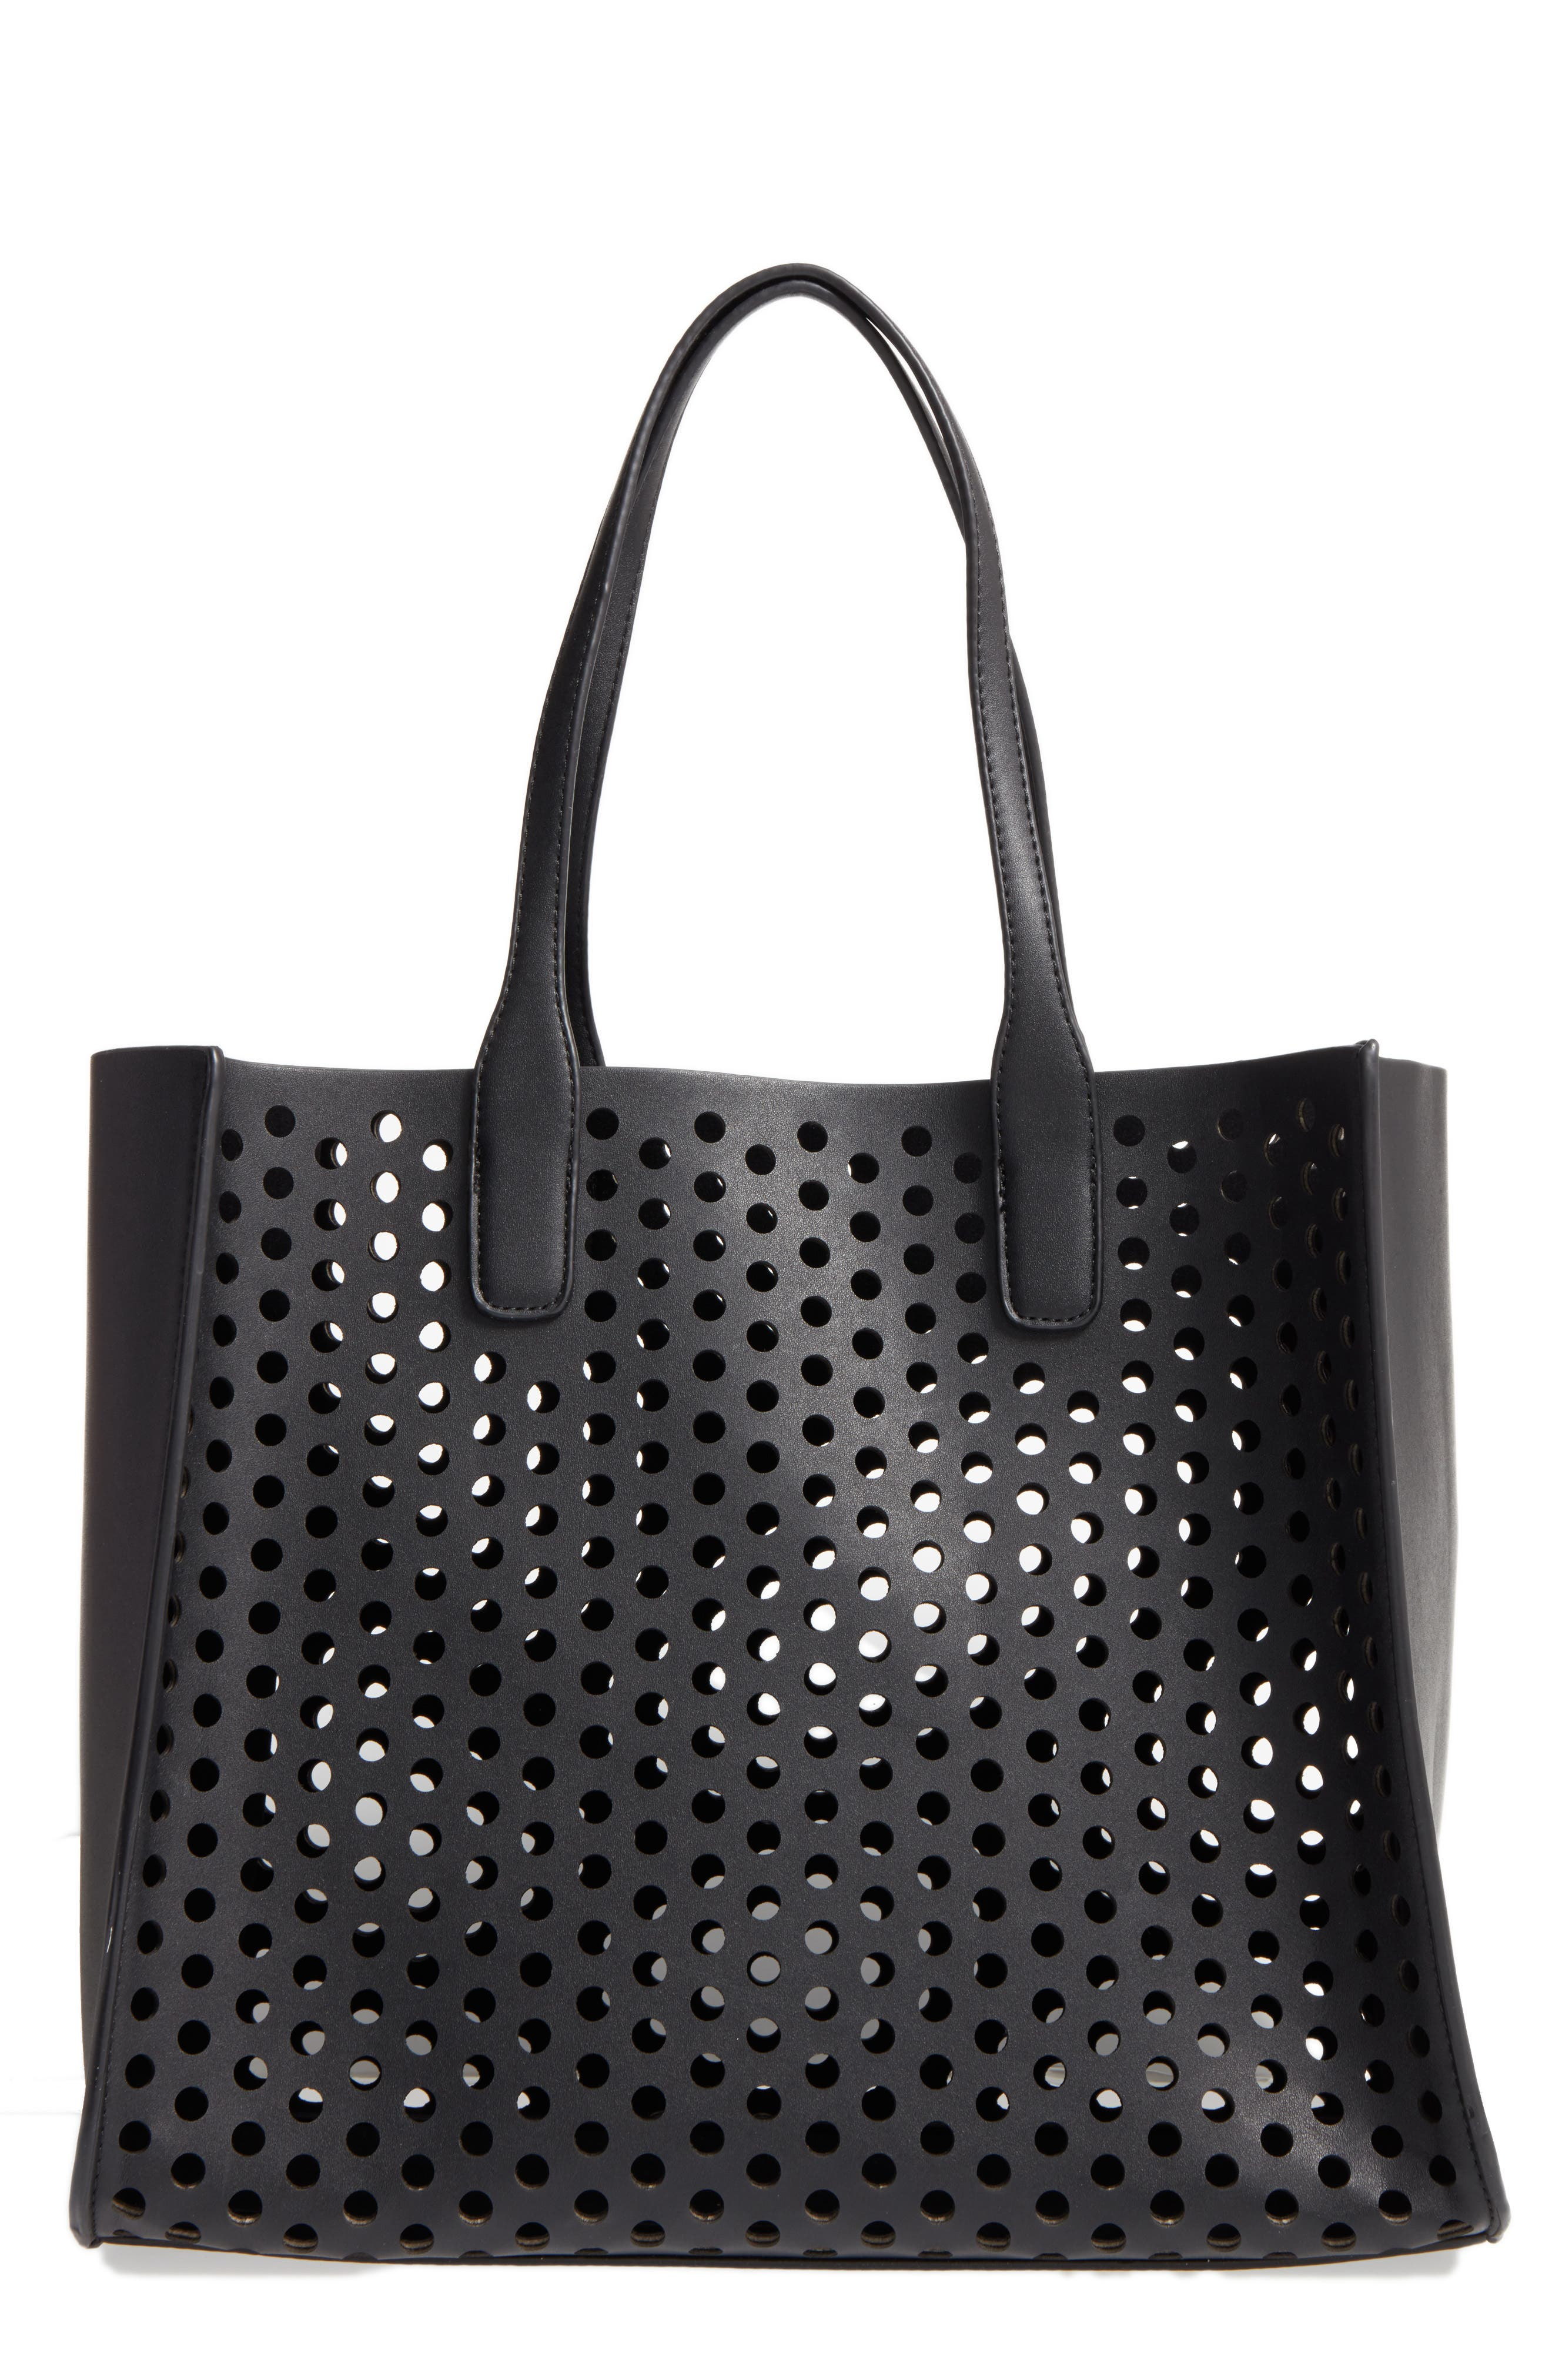 Alternate Image 1 Selected - Emperia Romy Perforated Faux Leather Tote & Pouch (Special Purchase)